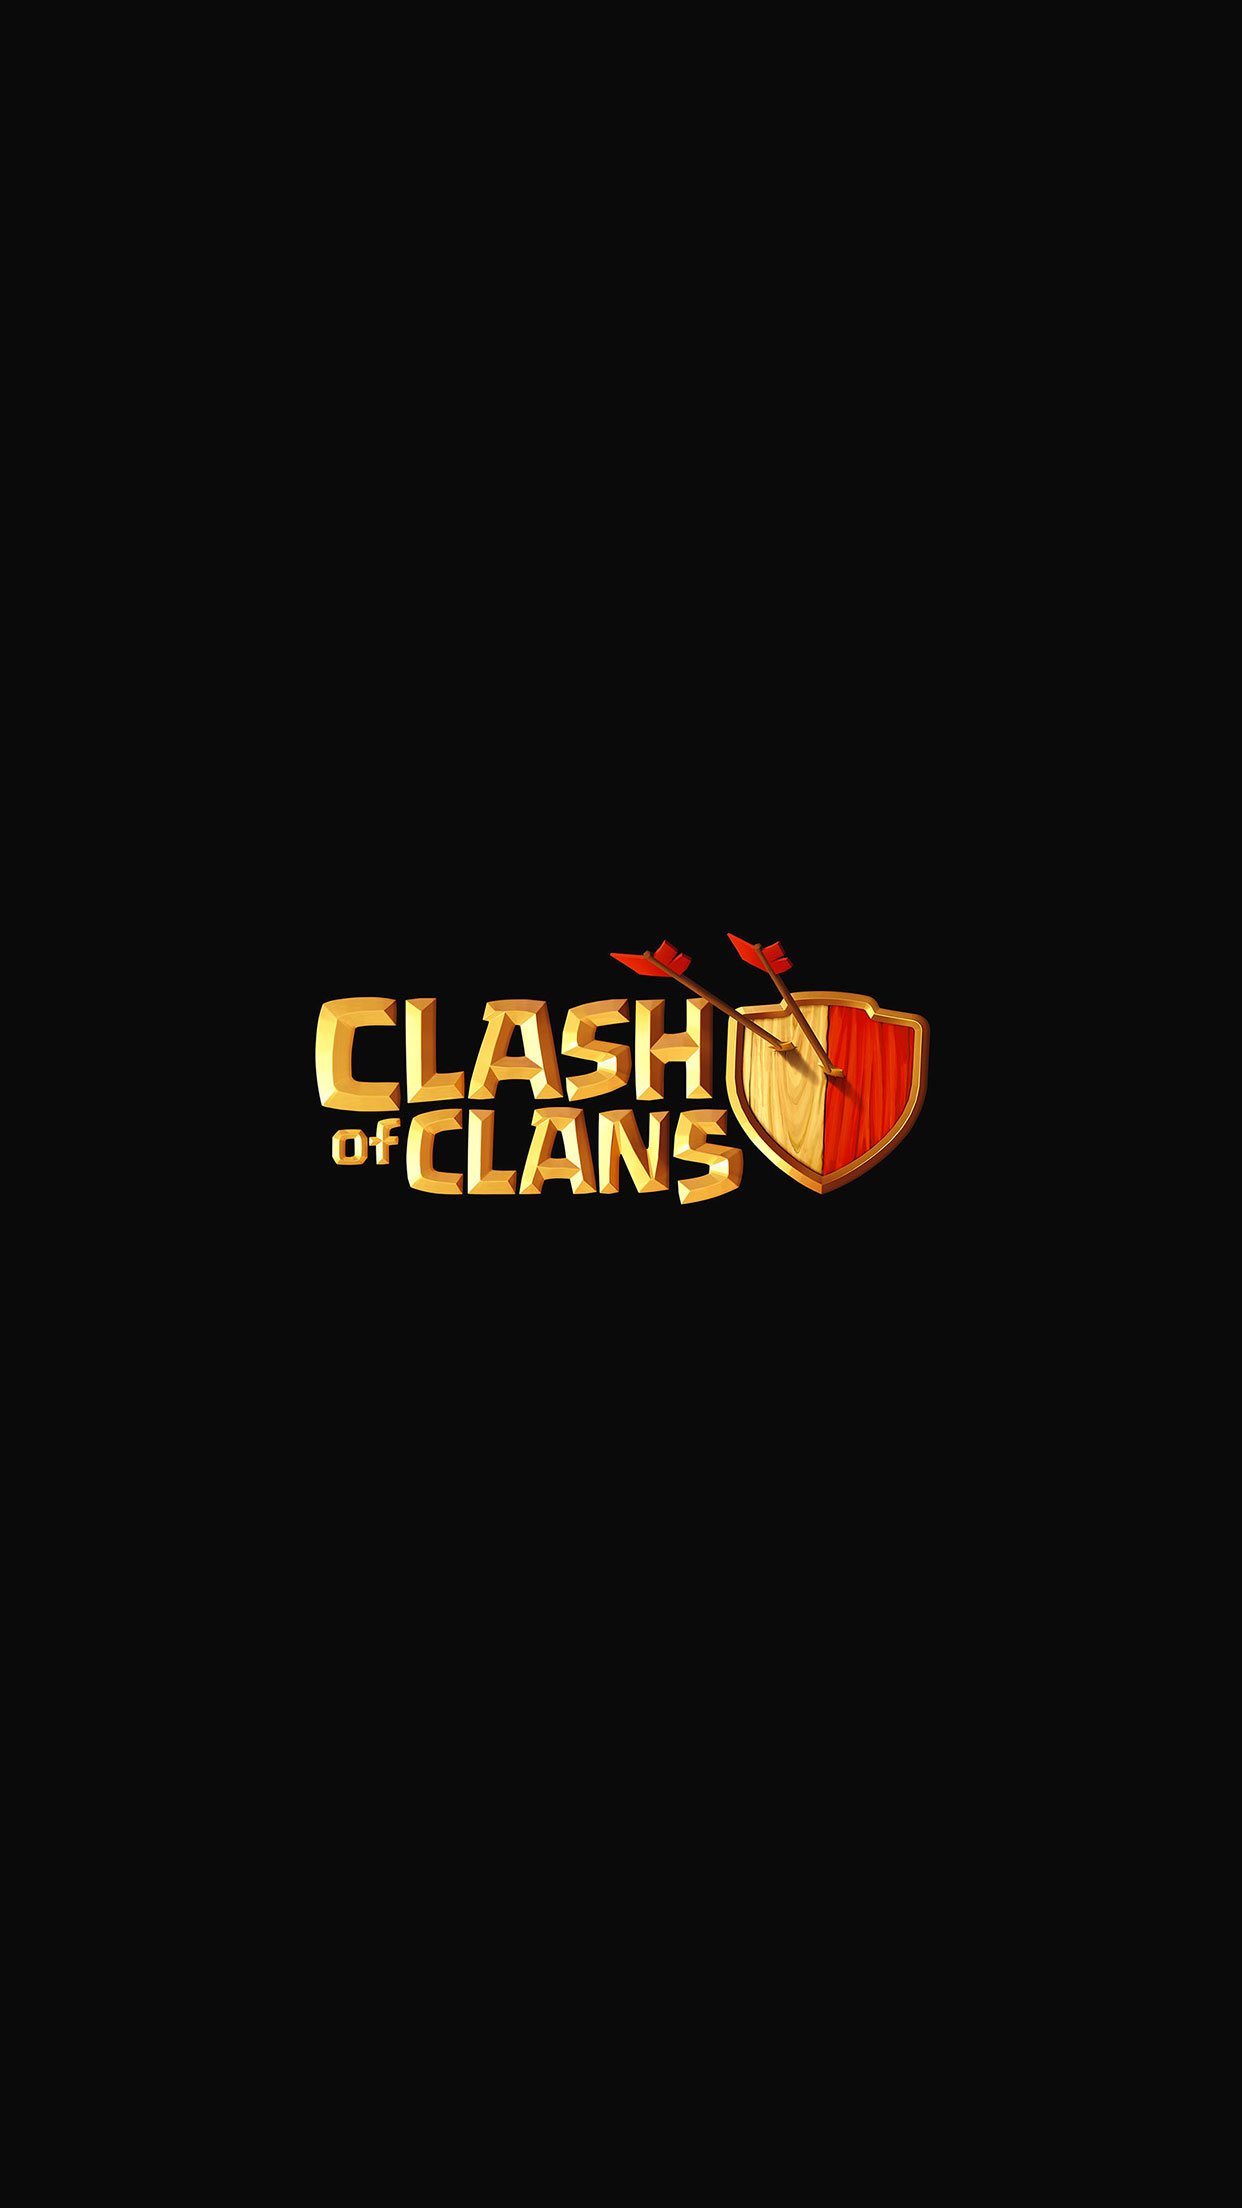 Clash Of Clans Logo Wallpaper for iPhone 11, Pro Max, X, 8 ...